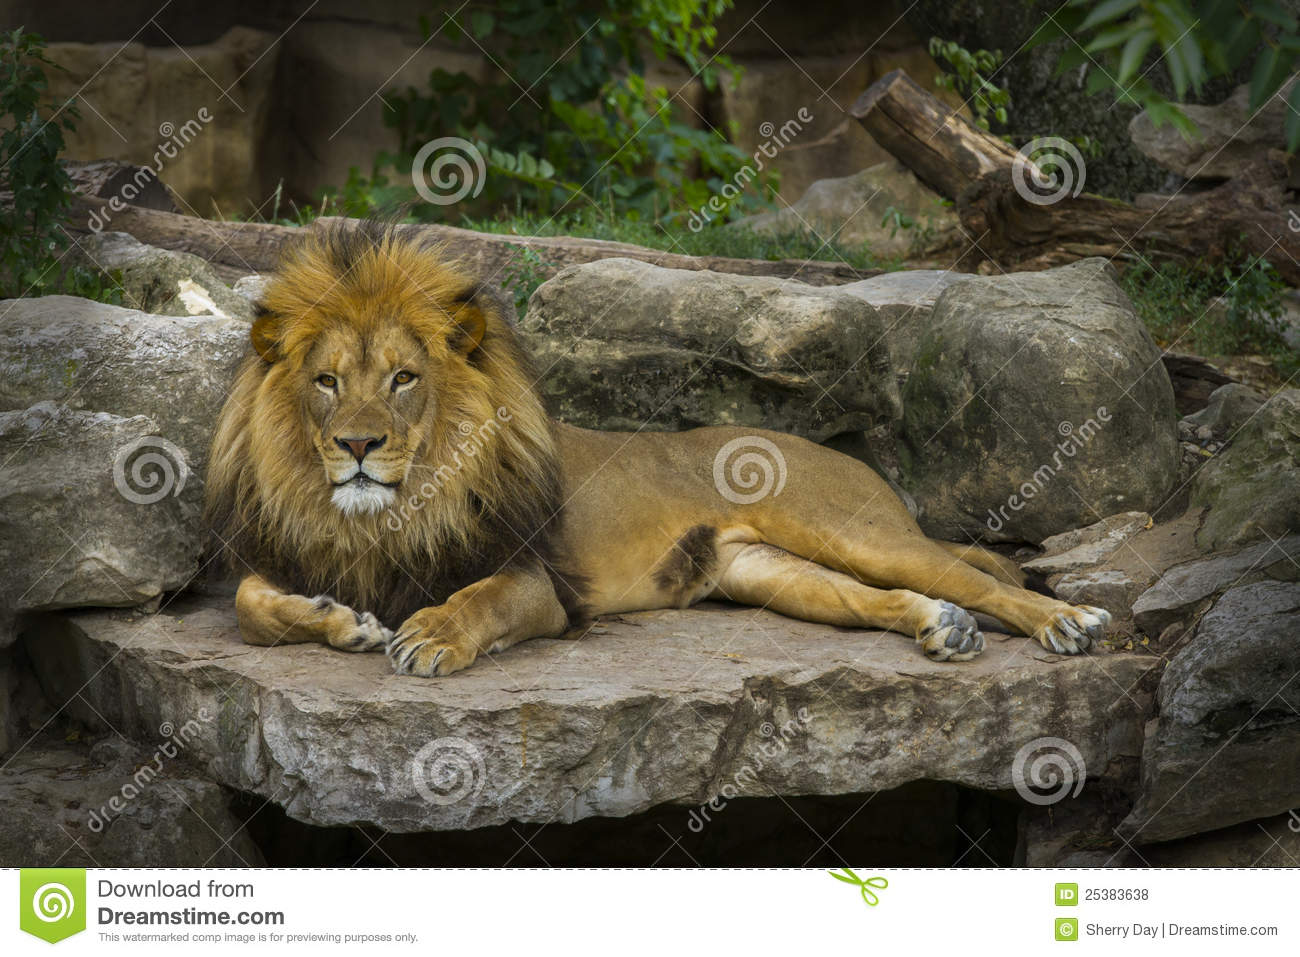 Lion Royalty Free Stock Photos - Image: 25383638